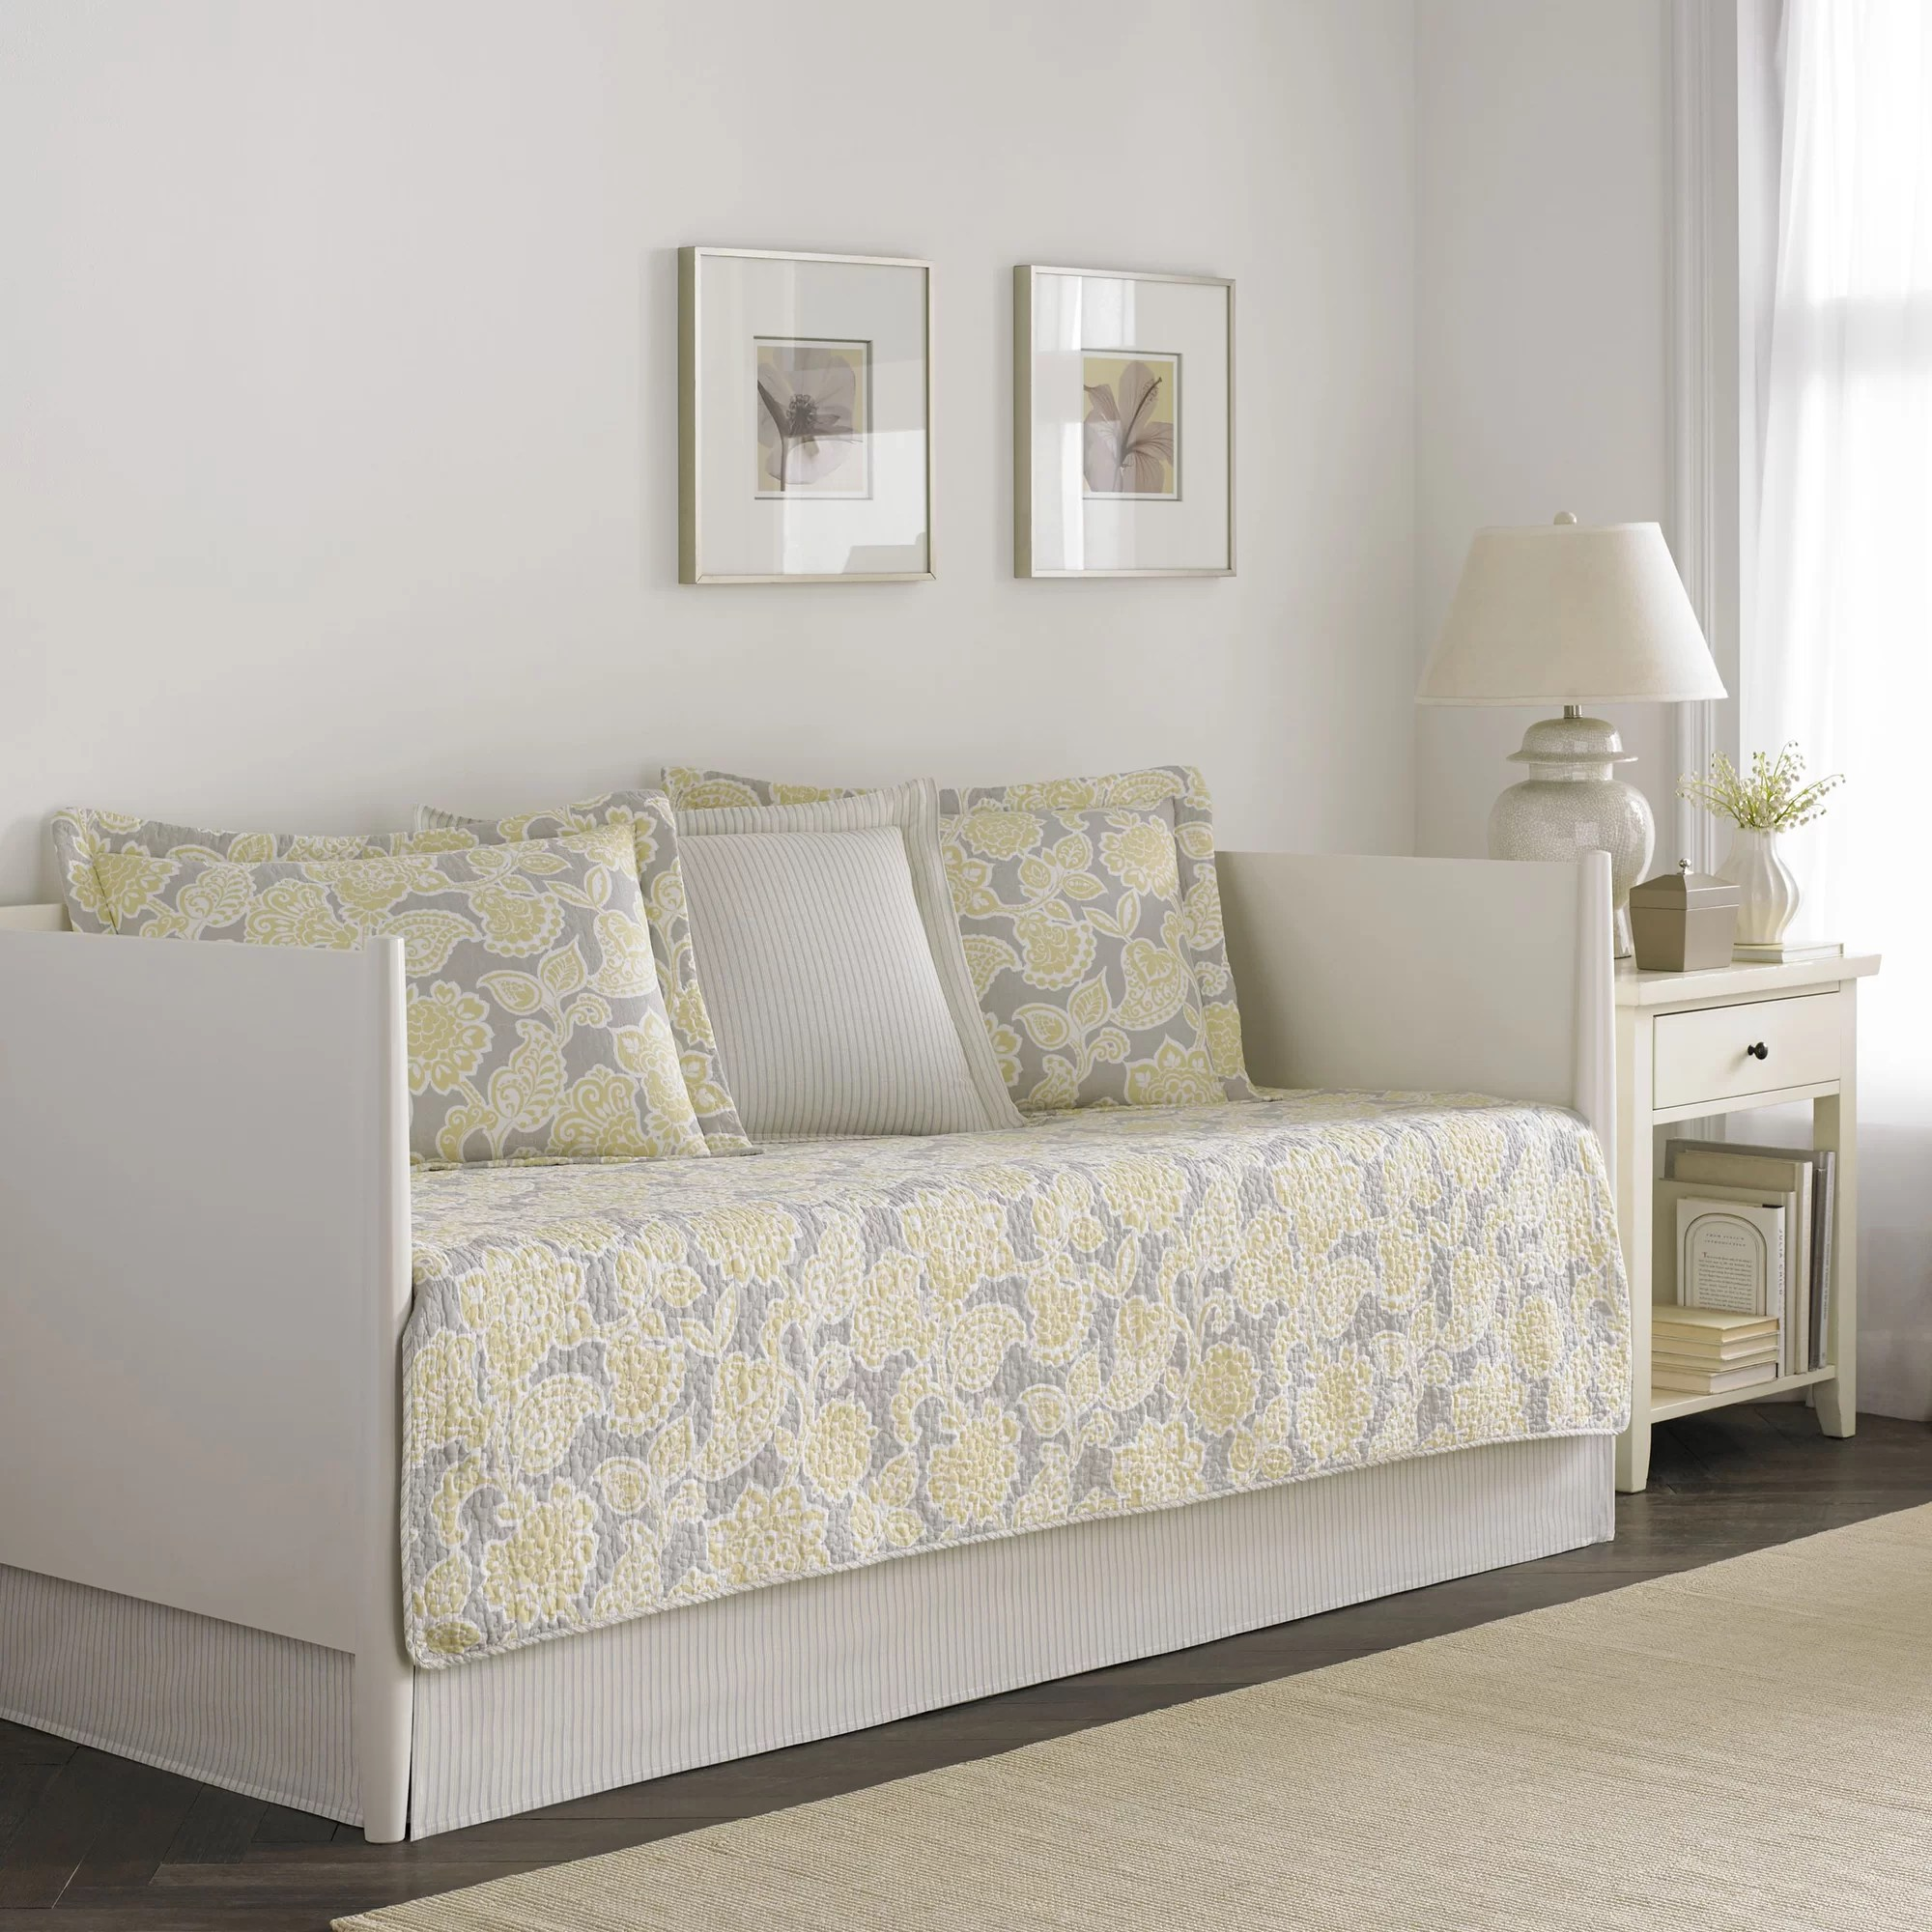 Ashley Furniture Daybeds Gallery Good Hooker Nightstands With